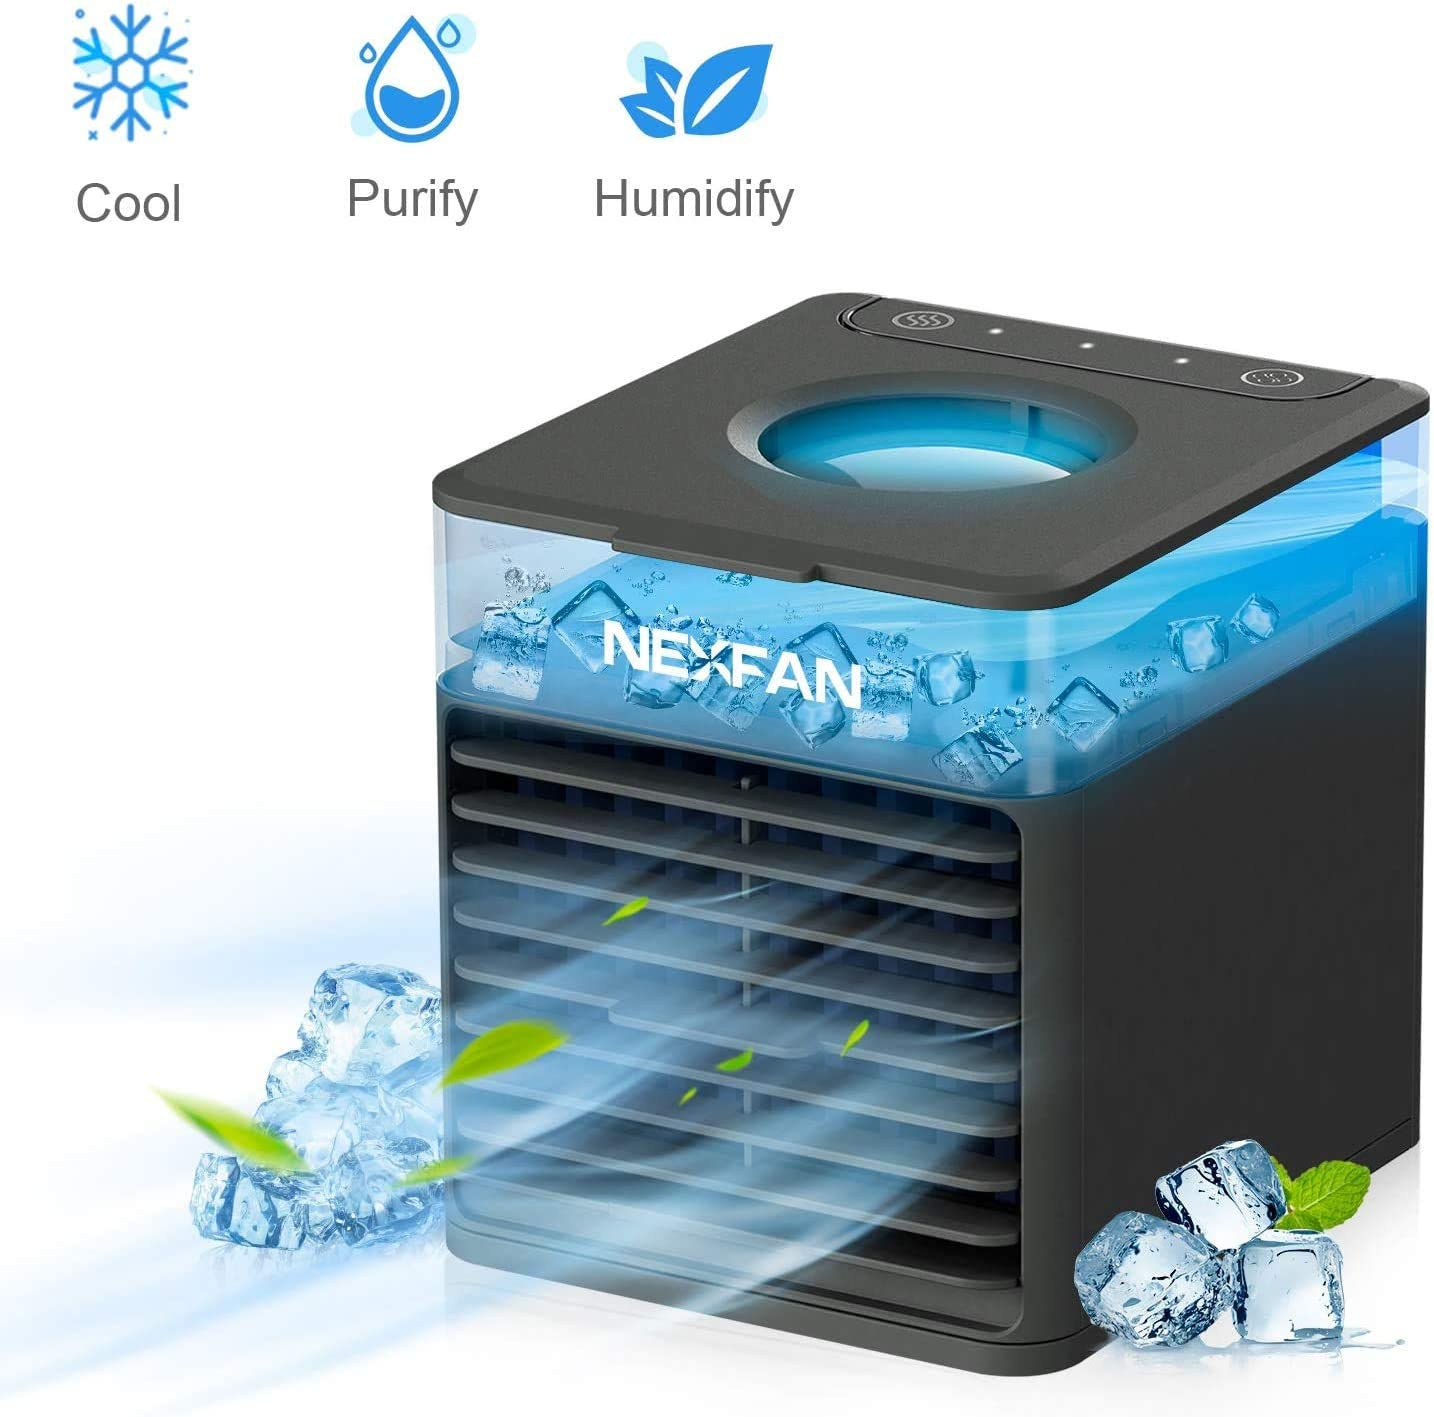 NexFan 4-in-1 Air Conditioner - Mini USB Space Cooler - Evaporative Cooler Air Humidifier With LED Lights - 3 Wind Speed Desktop Fan Suitable for Home/Office/Outdoor (Black)